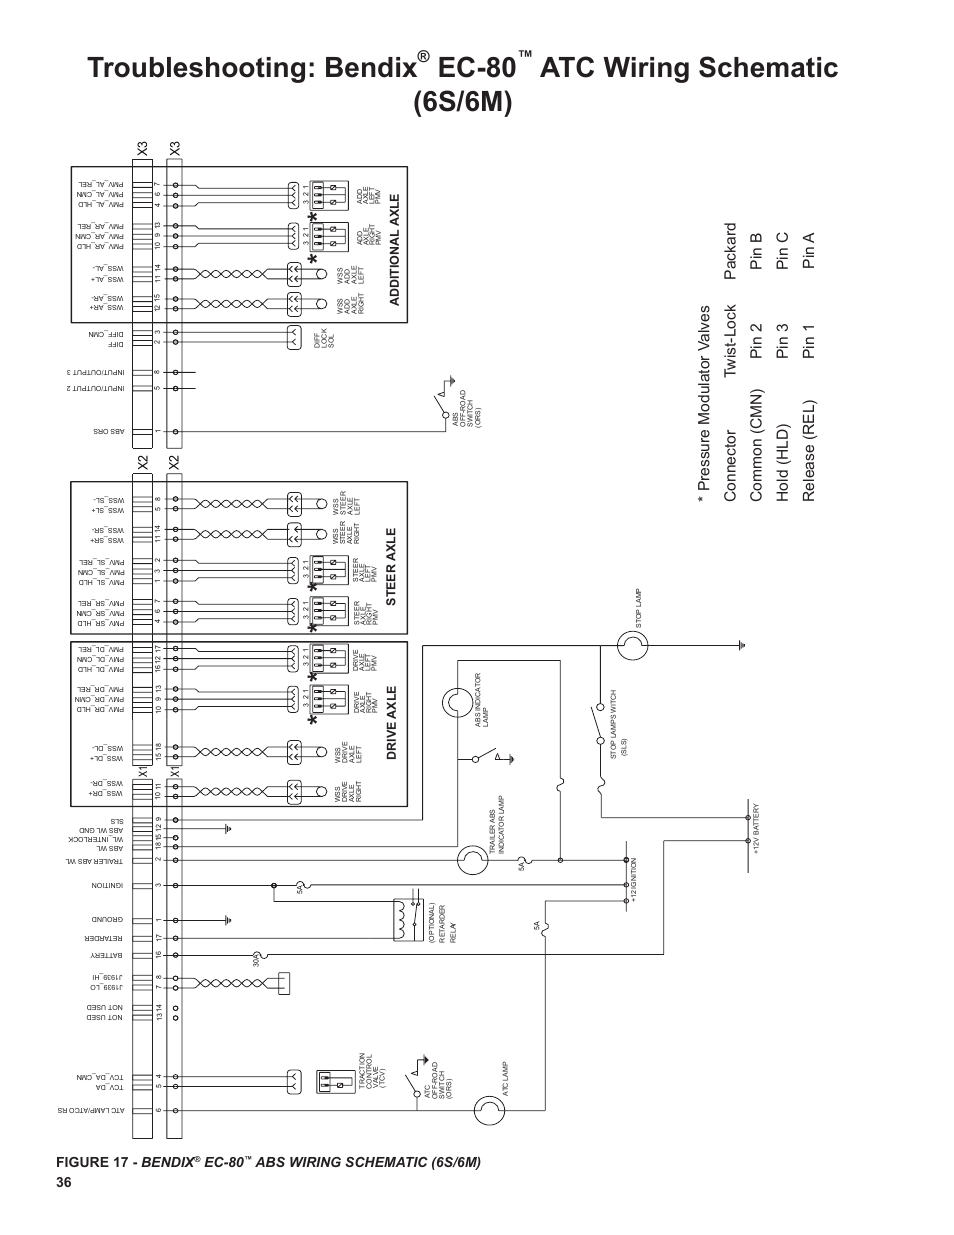 troubleshooting bendix ec 80 atc wiring schematic 6s 6m rh manualsdir com bendix king ky196a wiring diagram bendix ec-30 wiring diagram